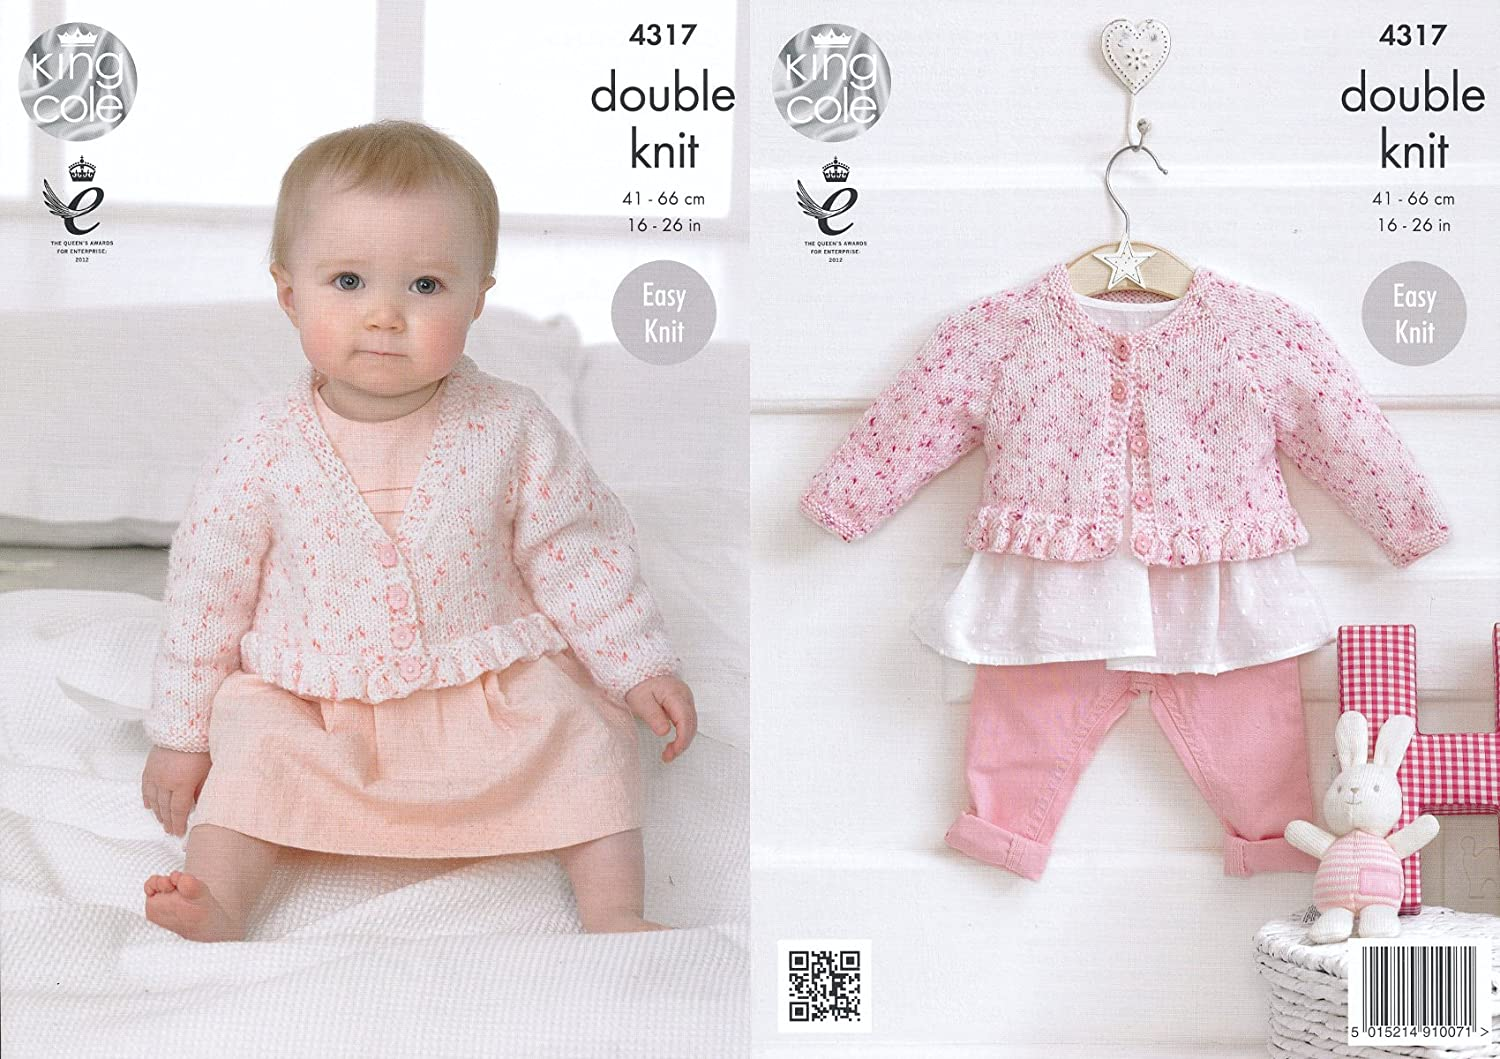 King Cole Double Knitting Pattern Baby V or Round Neck Cardigans Easy Knit Smarty DK (4317)